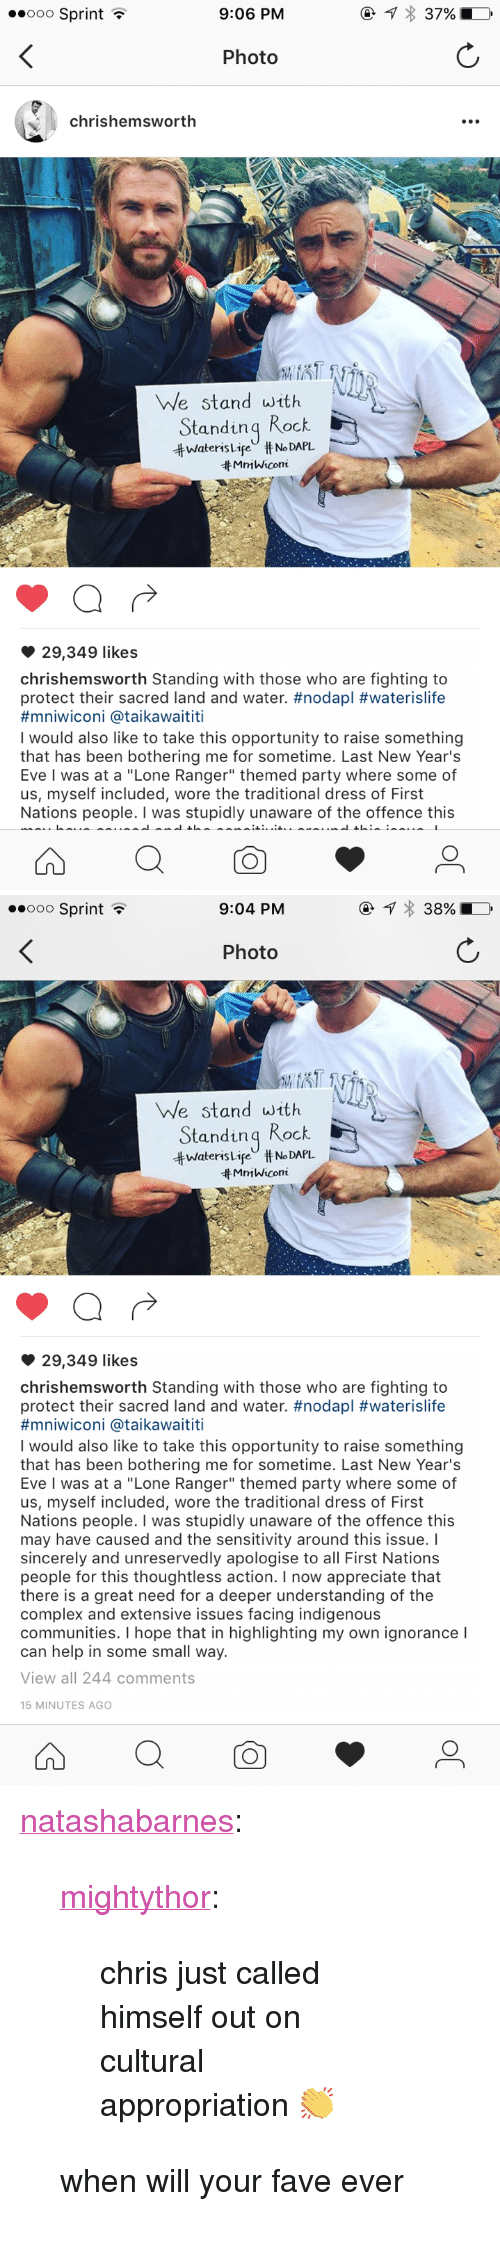 """Complex, Party, and Tumblr: ooO Sprint  9:06 PM  Photo  chrishemswortlh  We stand with  Standinq Rock  井Waters LifeU #No DAPL  Mn1 Wicom  29,349 likes  chrishemsworth Standing with those who are fighting to  protect their sacred land and water. #nodapl #waterislife  #mn.wicon. @taikawaititi  I would also like to take this opportunity to raise something  that has been bothering me for sometime. Last New Year's  Eve I was at a """"Lone Ranger"""" themed party where some of  us, myself included, wore the traditional dress of First  Nations people. I was stupidly unaware of the offence this   ooo Sprint  9:04 PM  Photo  We stand with  Standinq Rock  ttwateris Lir"""" # No DAPL.  tt MmWicom  29,349 likes  chrishemsworth Standing with those who are fighting to  protect their sacred land and water. #nodapl #waterislife  #mniwicon. @ta.kawaititi  I would also like to take this opportunity to raise something  that has been bothering me for sometime. Last New Year's  Eve I was at a """"Lone Ranger"""" themed party where some of  us, myself included, wore the traditional dress of First  Nations people. I was stupidly unaware of the offence this  may have caused and the sensitivity around this issue. I  sincerely and unreservedly apologise to all First Nations  people for this thoughtless action. I now appreciate that  there is a great need for a deeper understanding of the  complex and extensive issues facing indigenous  communities. I hope that in highlighting my own ignorance I  can help in some small way.  View all 244 comments  15 MINUTES AGO <p><a class=""""tumblr_blog"""" href=""""http://natashabarnes.tumblr.com/post/152405570879"""">natashabarnes</a>:</p> <blockquote> <p><a class=""""tumblr_blog"""" href=""""http://mightythor.tumblr.com/post/152405529477"""">mightythor</a>:</p> <blockquote> <p>chris just called himself out on cultural appropriation 👏</p> </blockquote> <p>when will your fave ever</p> </blockquote>"""